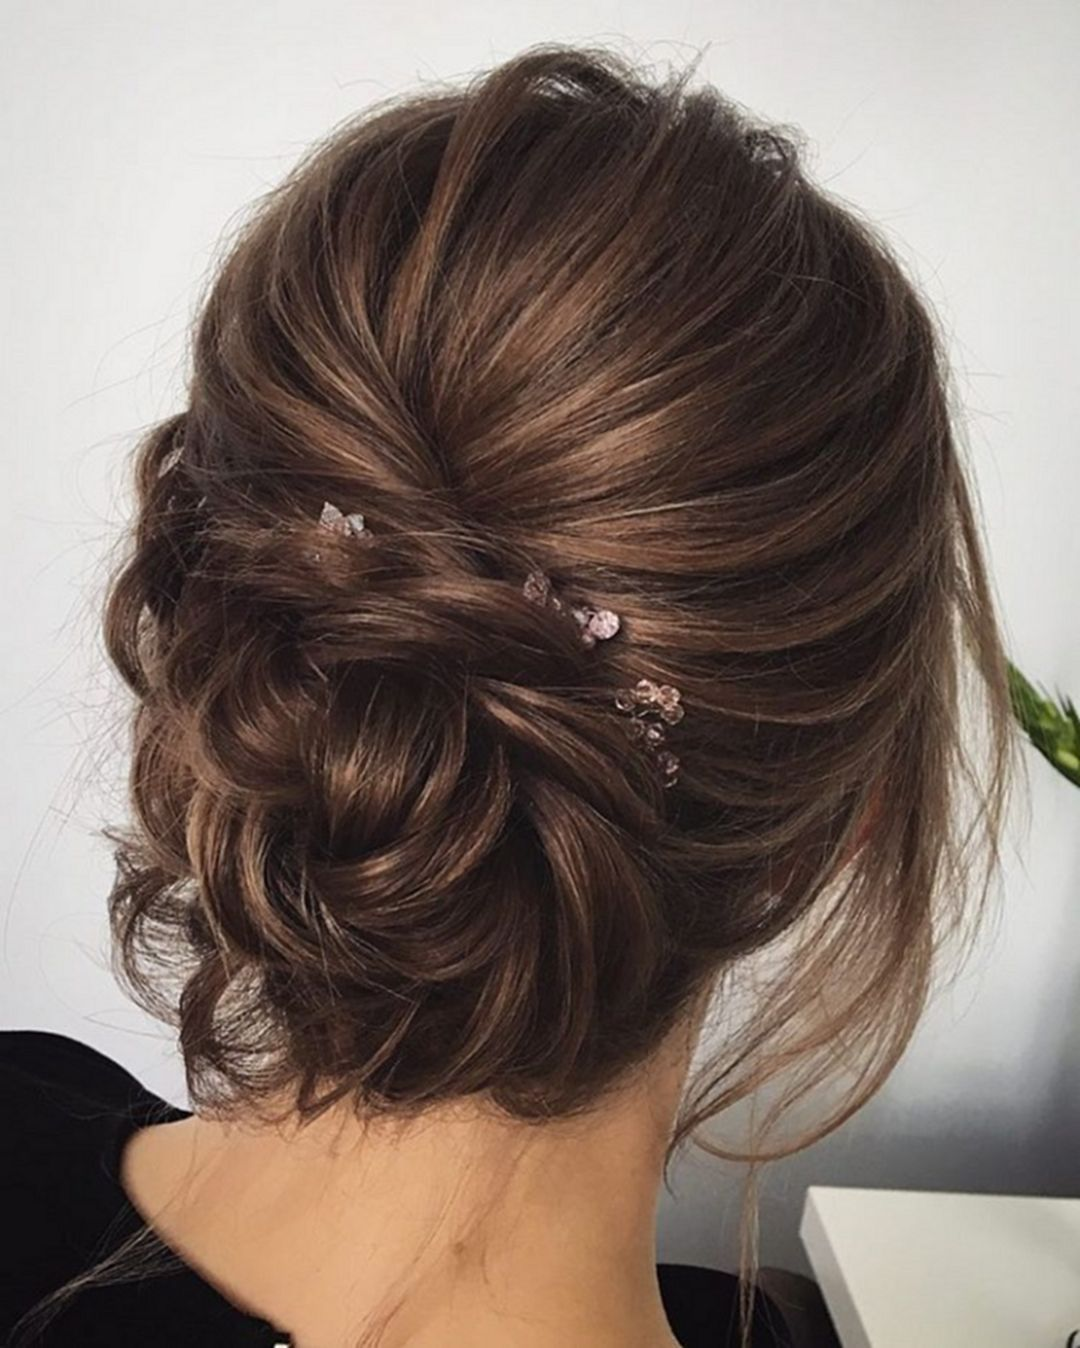 Wonderful Bridesmaid Updo Hairstyles 008 Awesome Wedding